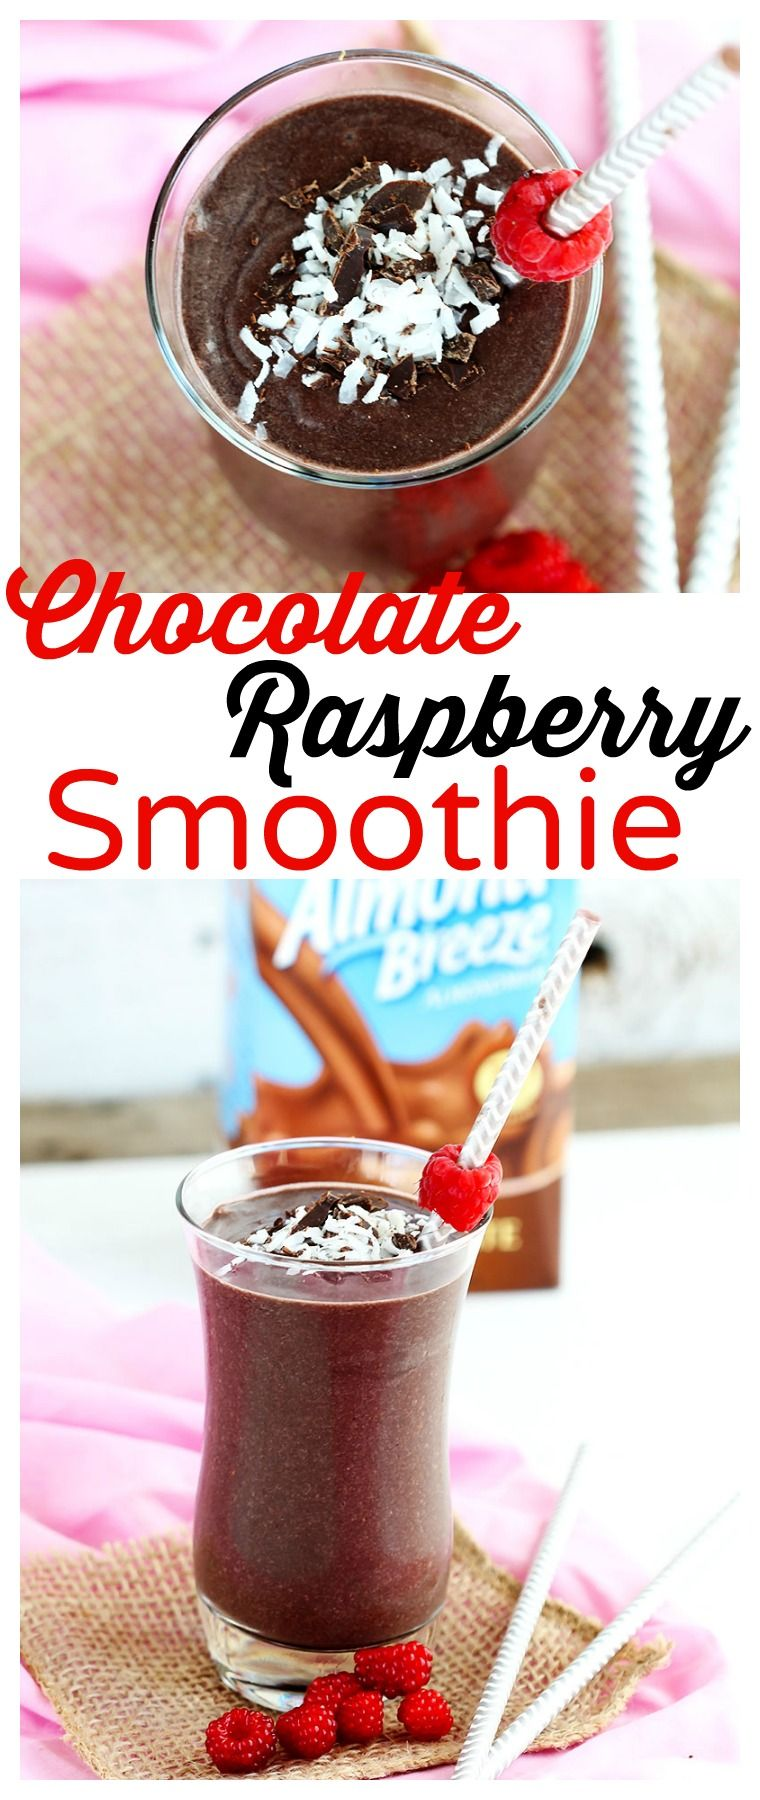 Chocolate raspberry smoothie delicious blend of frozen